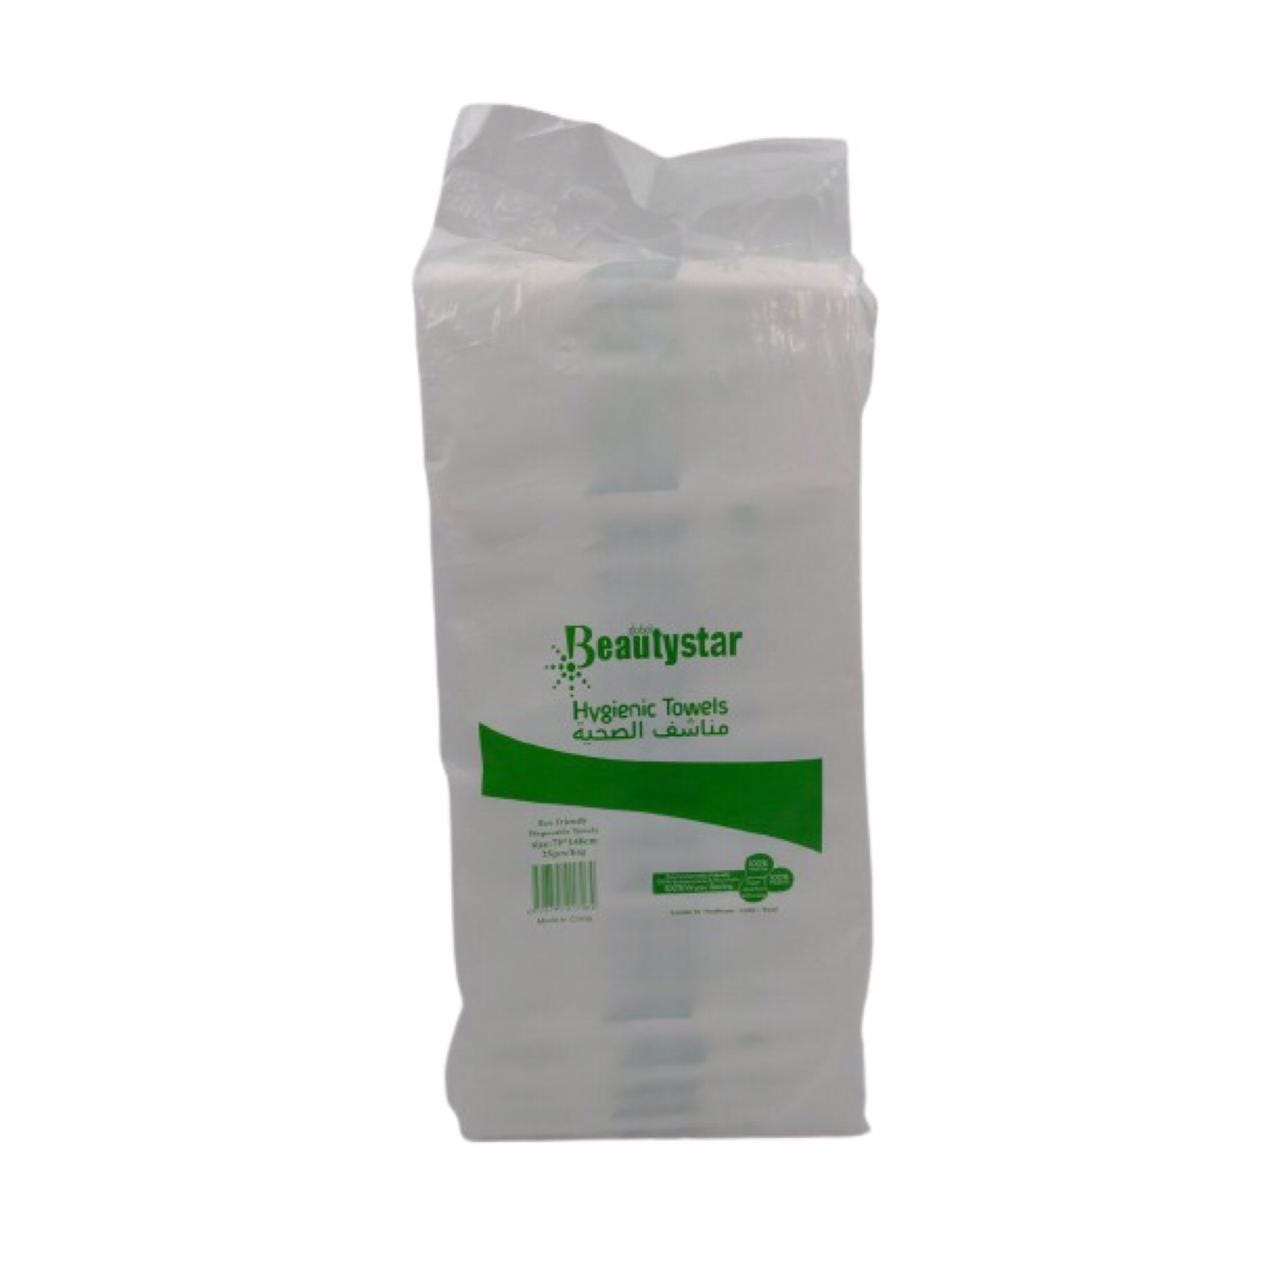 Hygienic towel, Salon, Disposable towel, Disposable, Towel, Hygiene